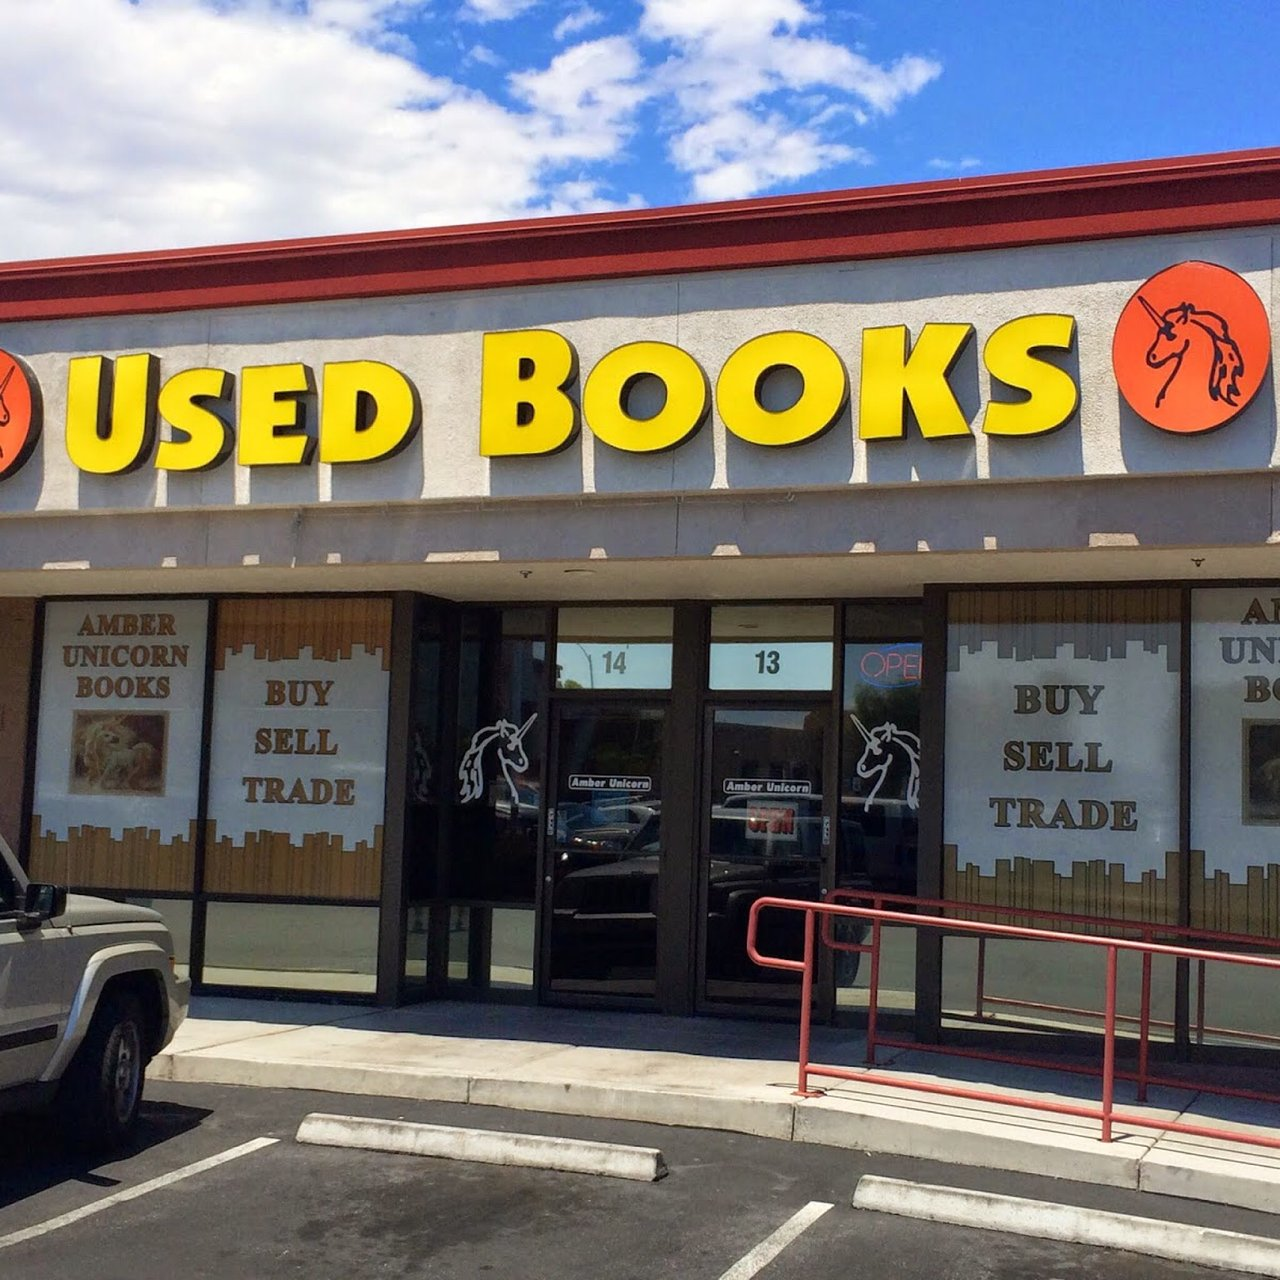 Amber Unicorn Books Las Vegas 2020 All You Need To Know Before You Go With Photos Tripadvisor La $a0,prompt1 li $v0,4 syscall #asks for first integer. amber unicorn books las vegas 2020